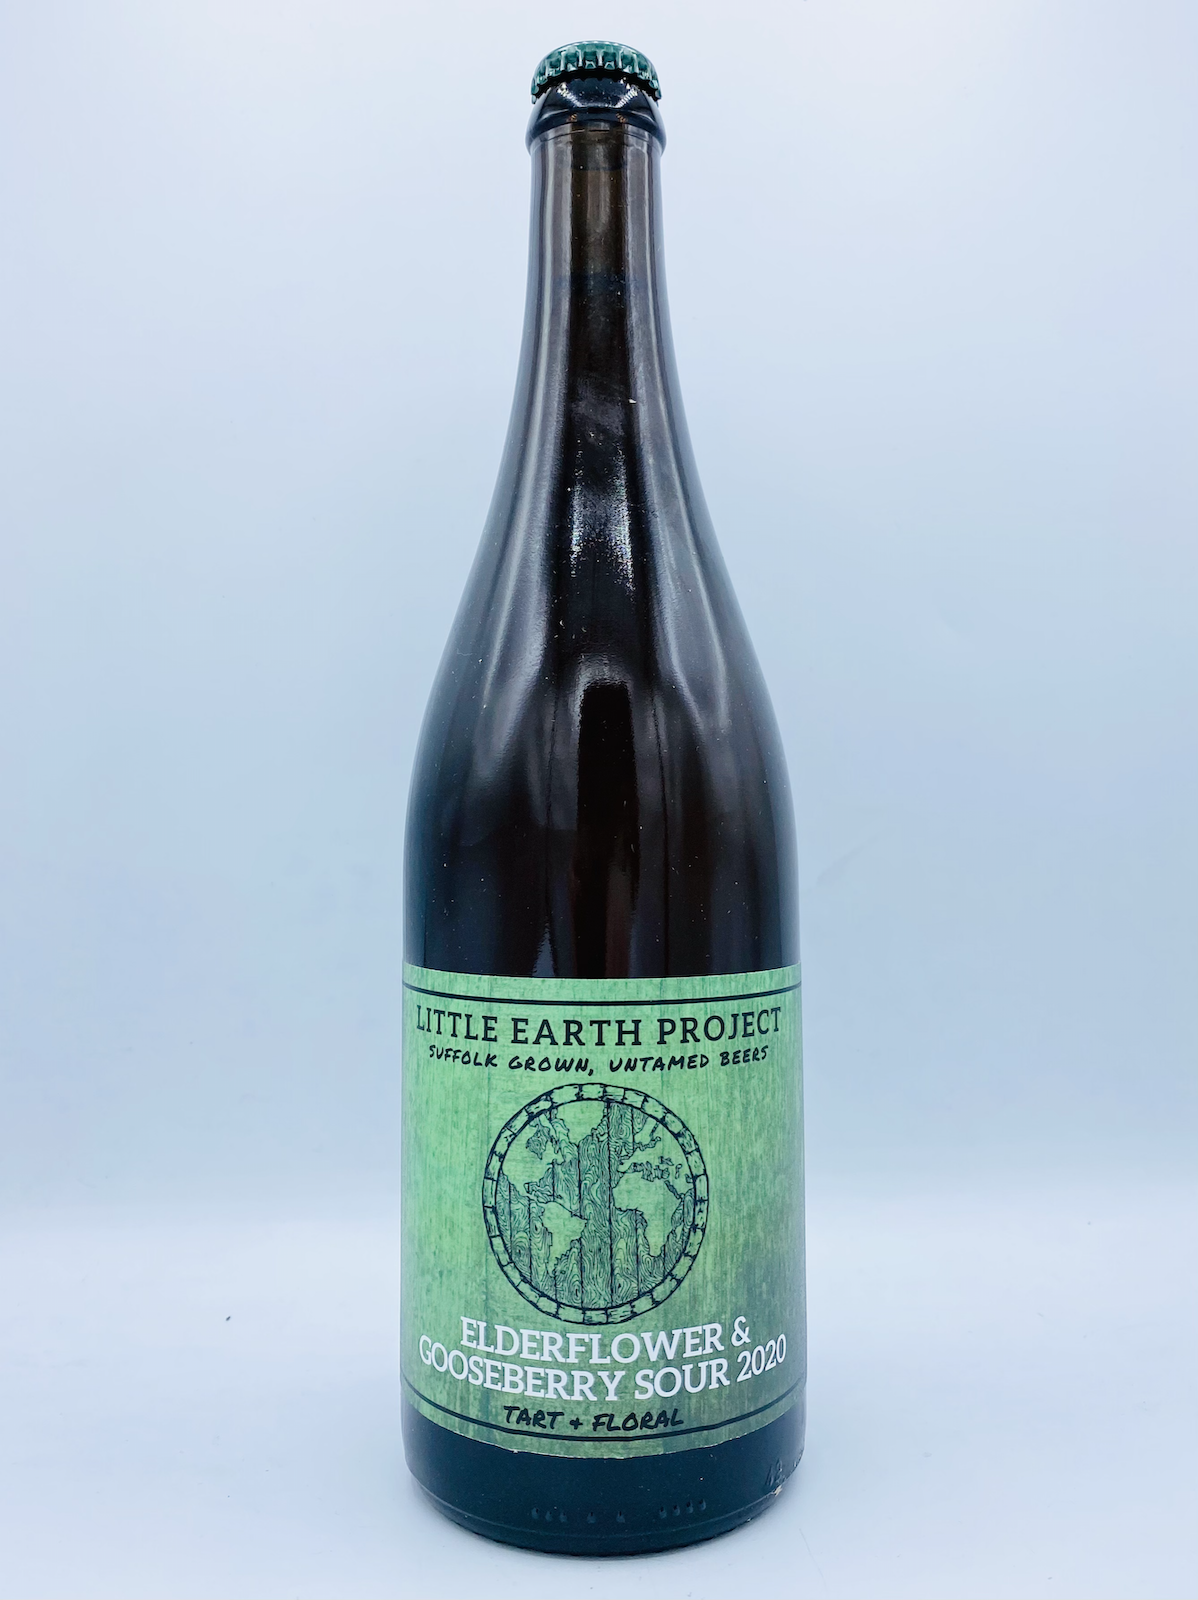 Little Earth Project - Elderflour & Gooseberry S 4.0%